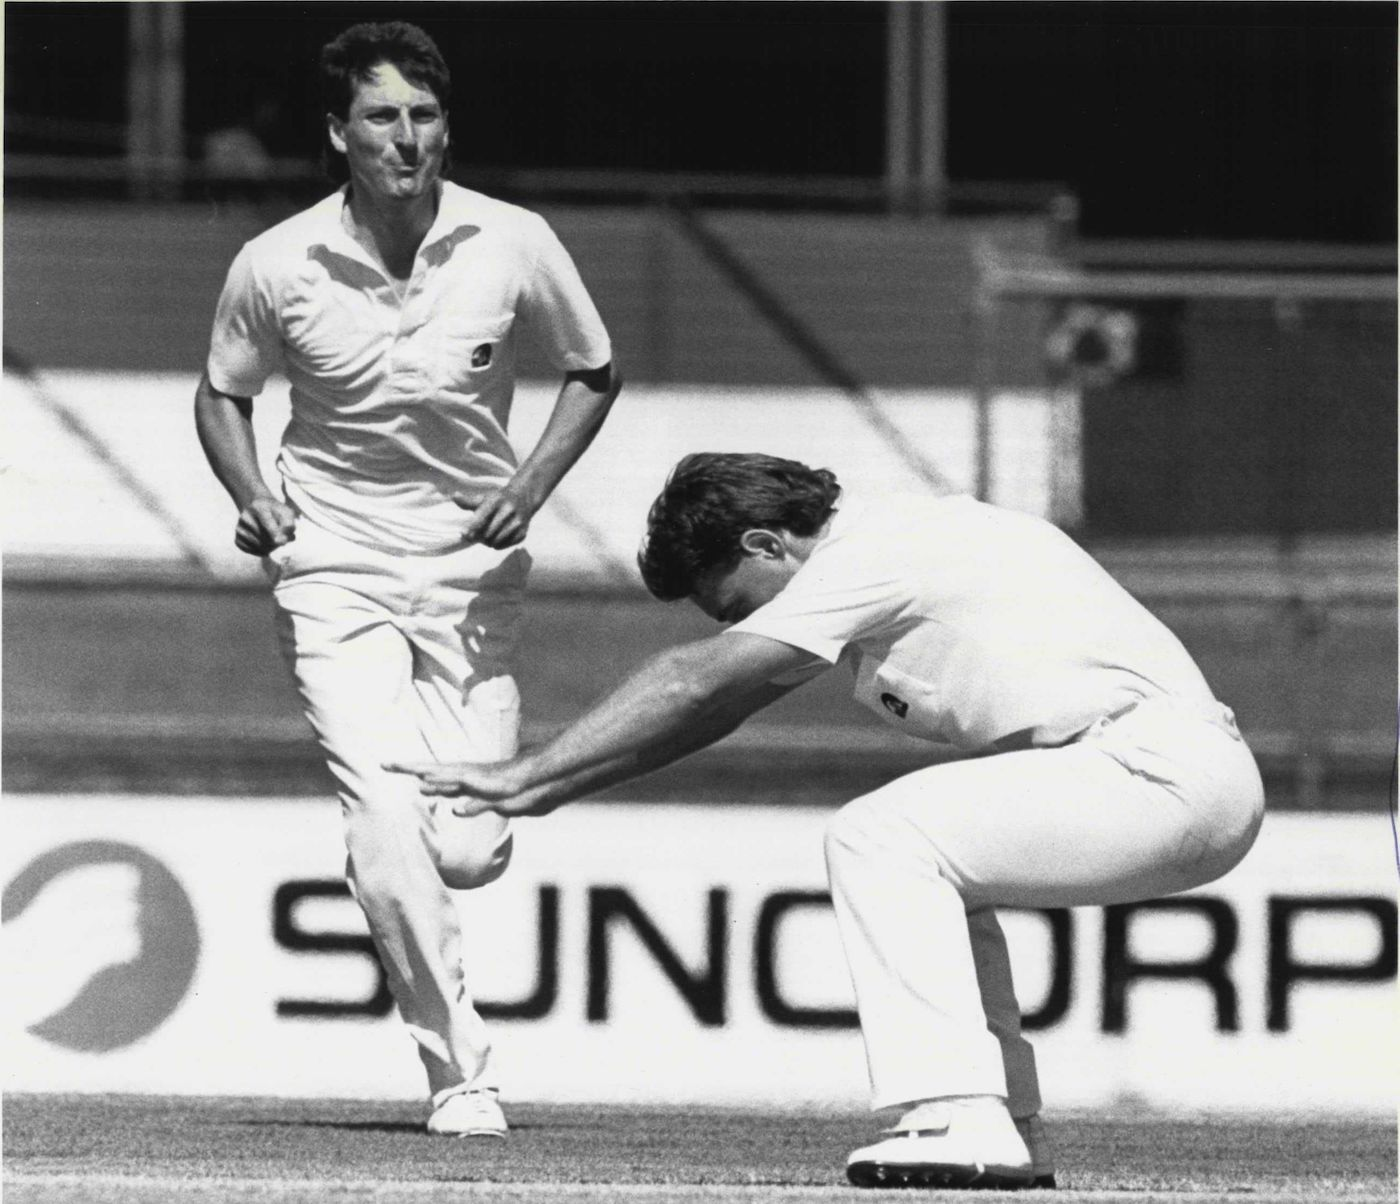 Danny Morrison bows to Allan Border (not in photo) after dismissing him in the Gabba Test earlier in the series